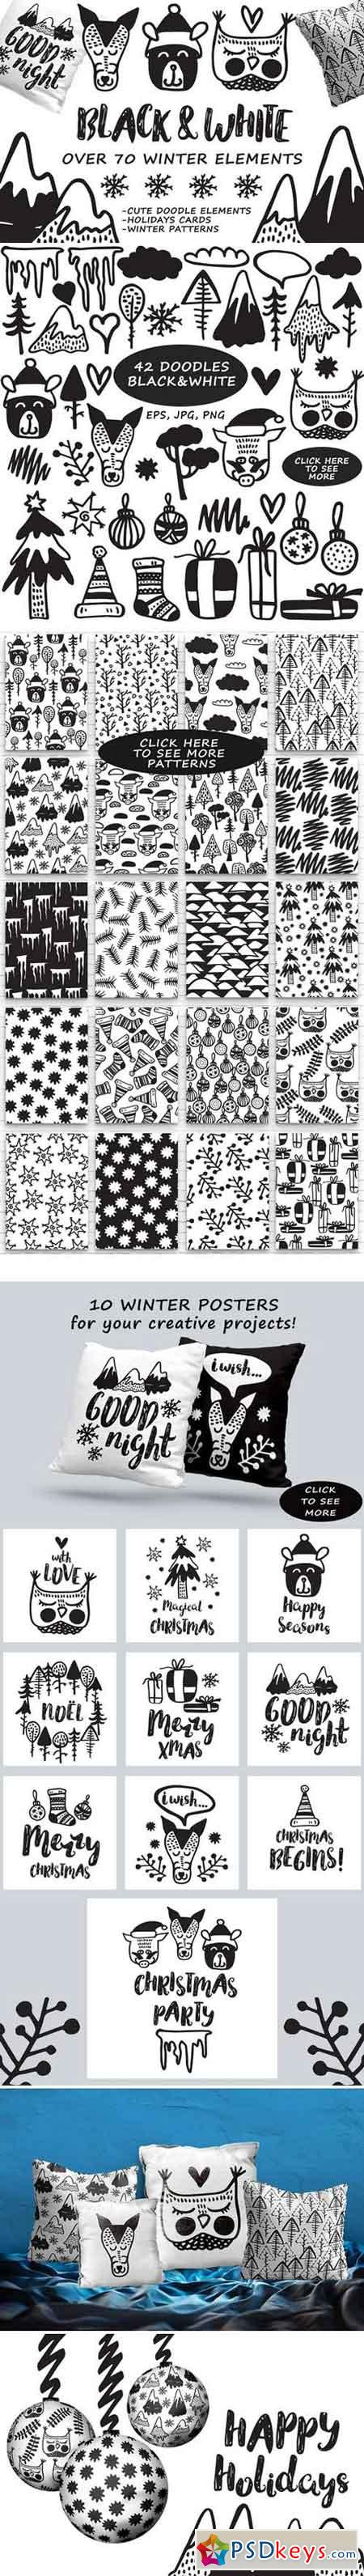 Black&White winter- hand drawn set 2006168